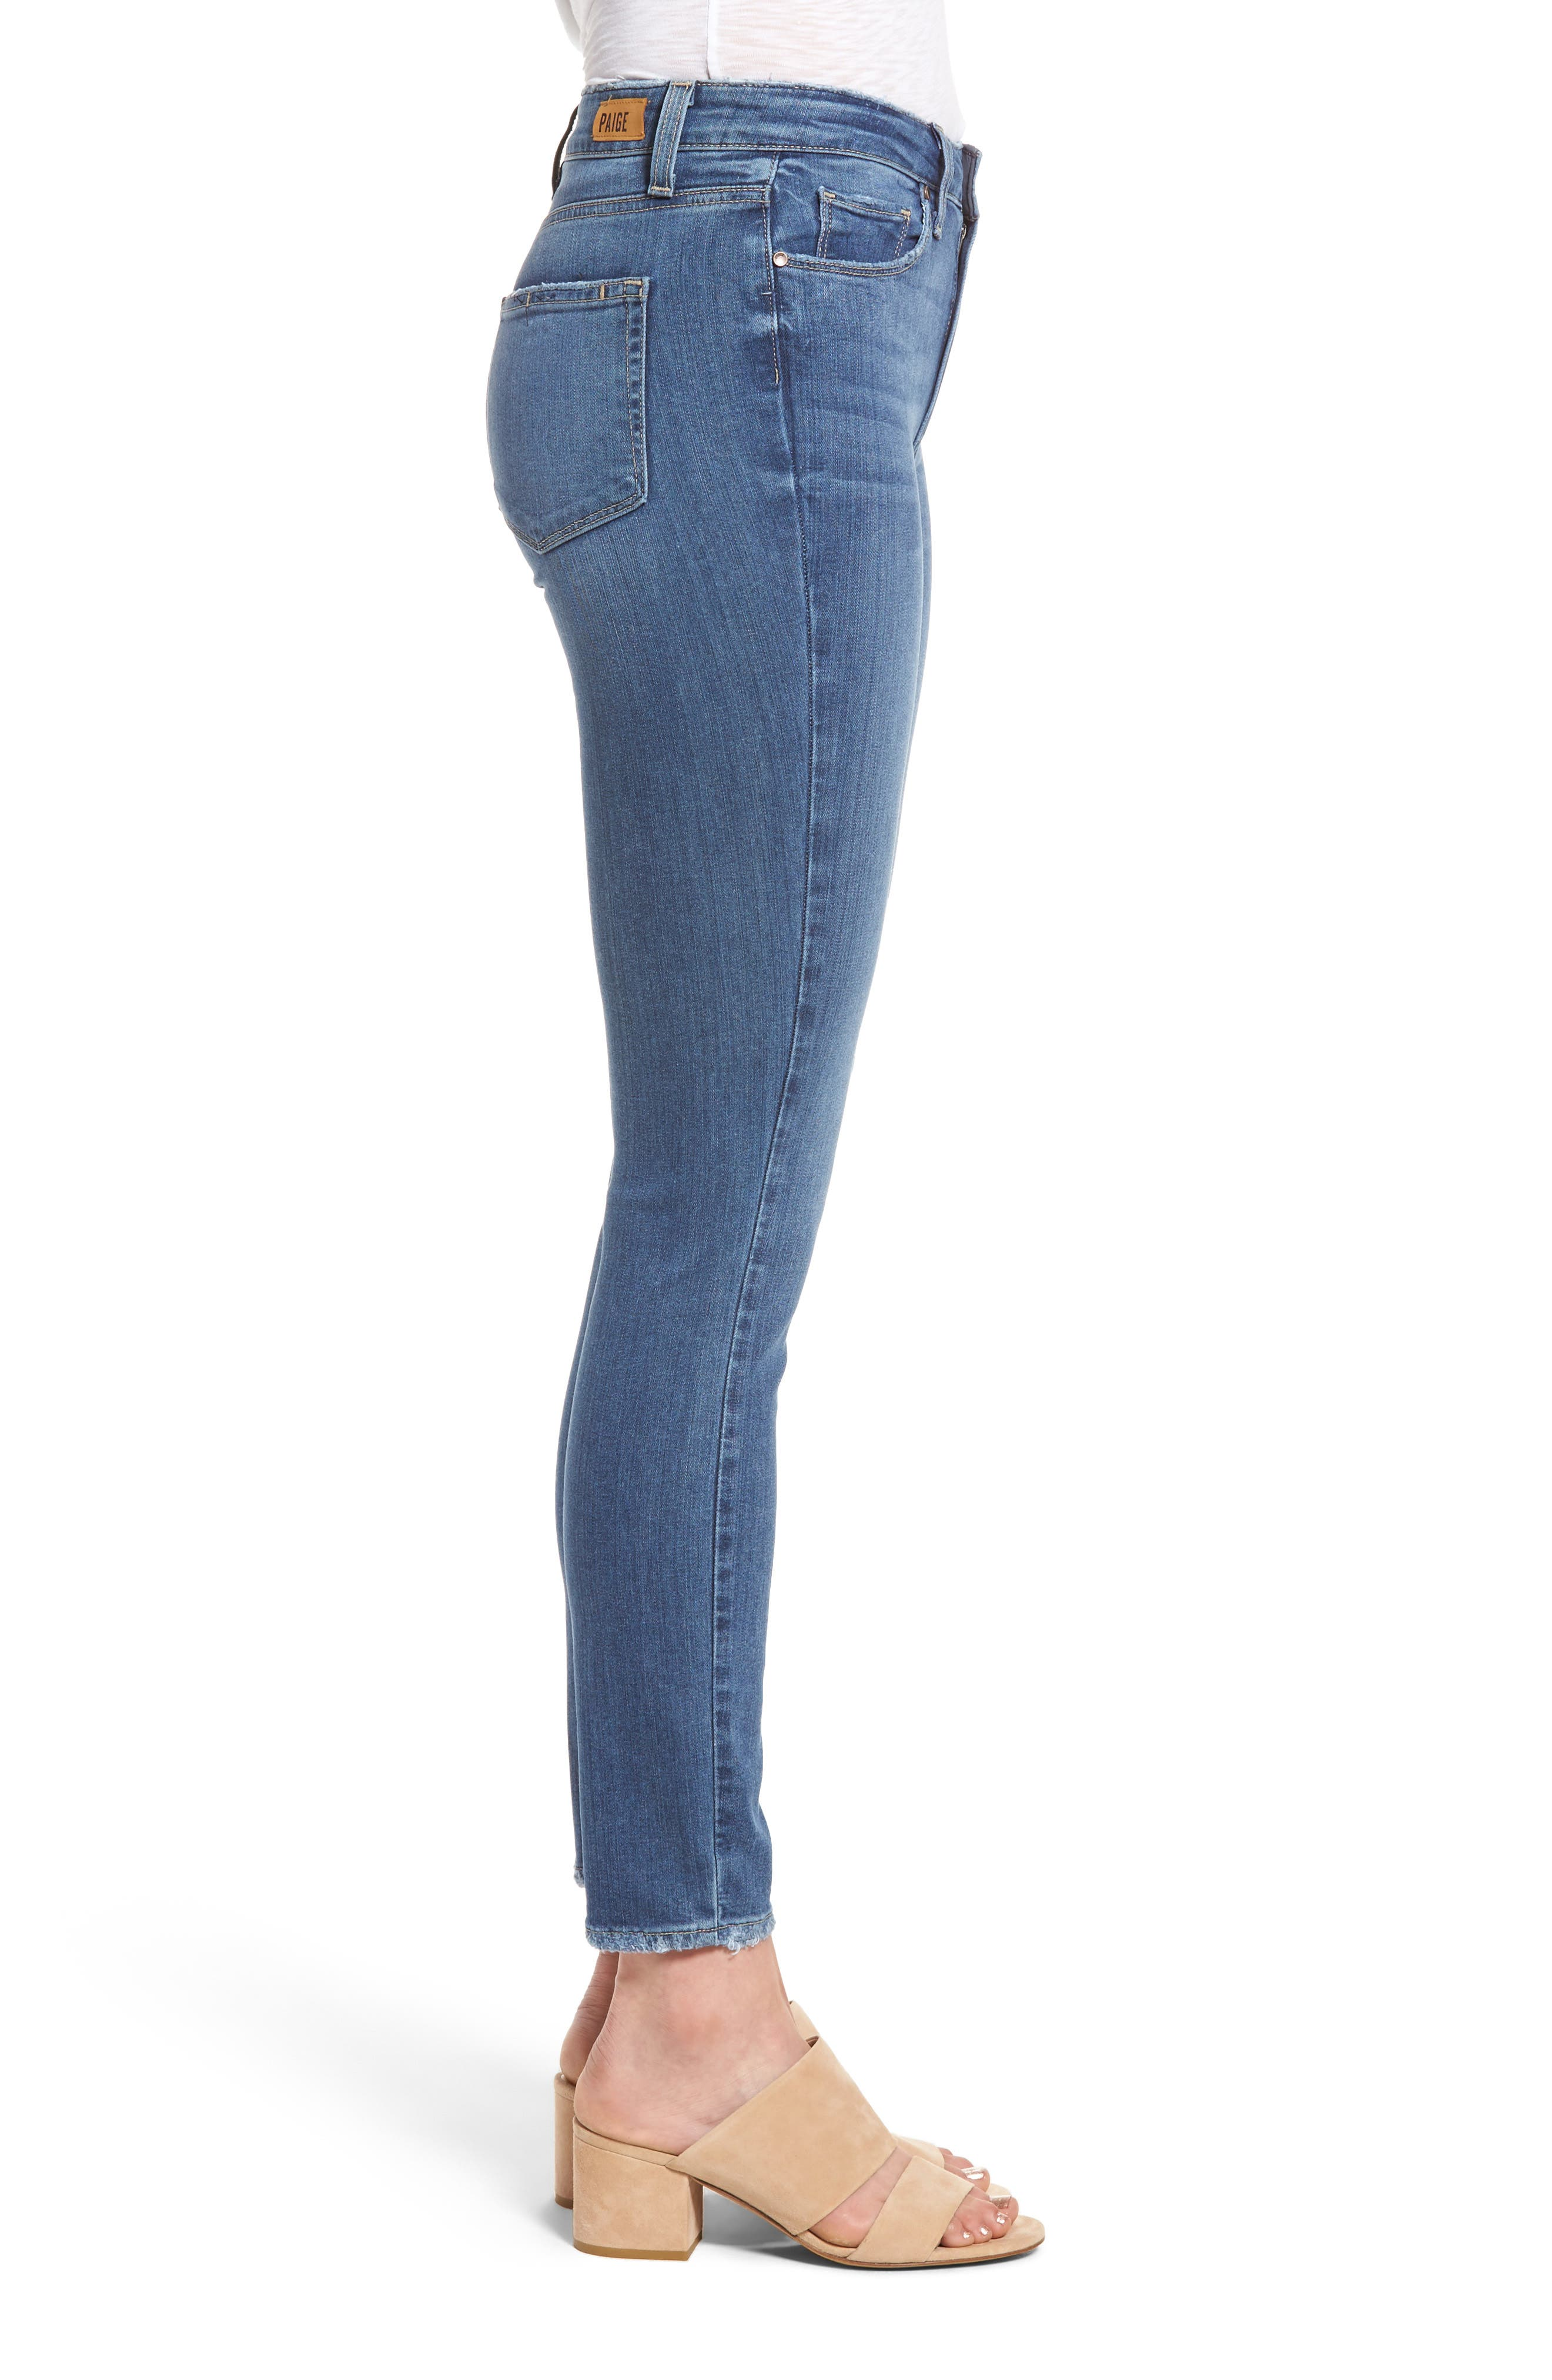 Hoxton High Waist Ankle Skinny Jeans,                             Alternate thumbnail 3, color,                             Roman